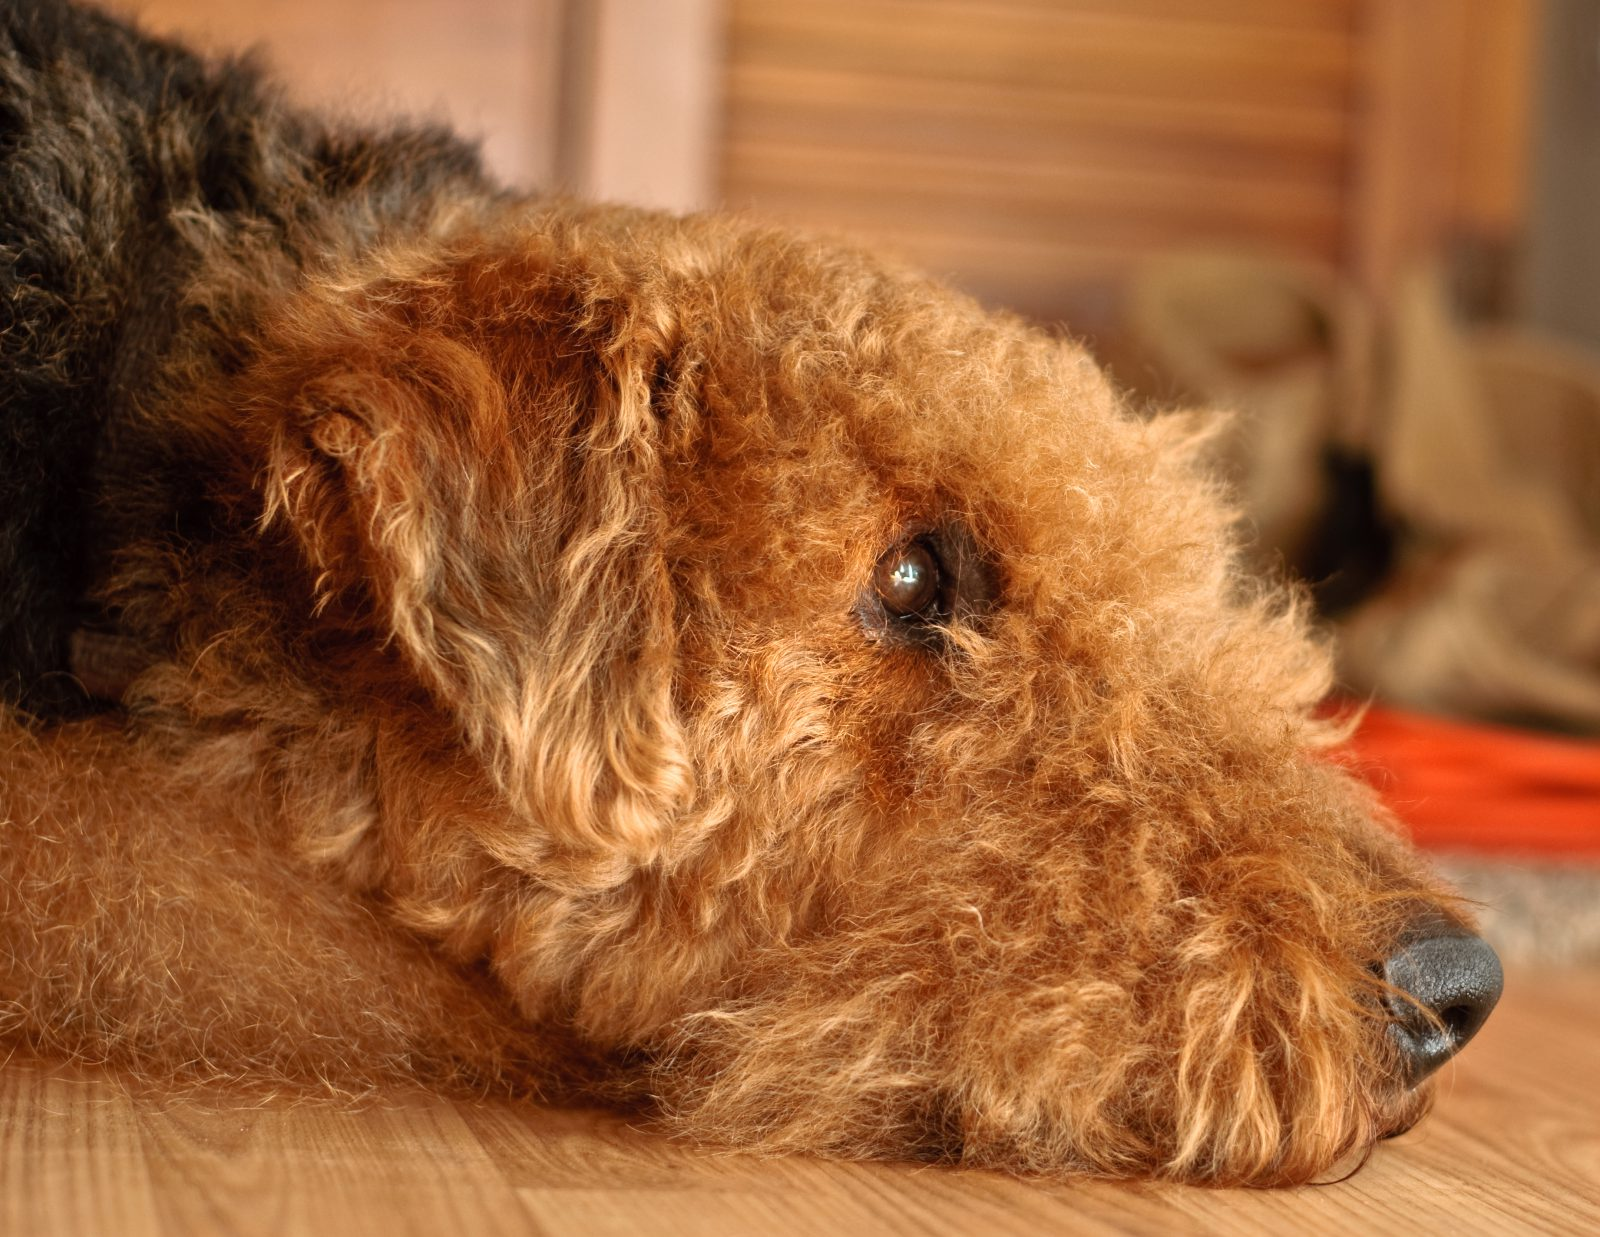 cao-airedale-terrier-ambiente